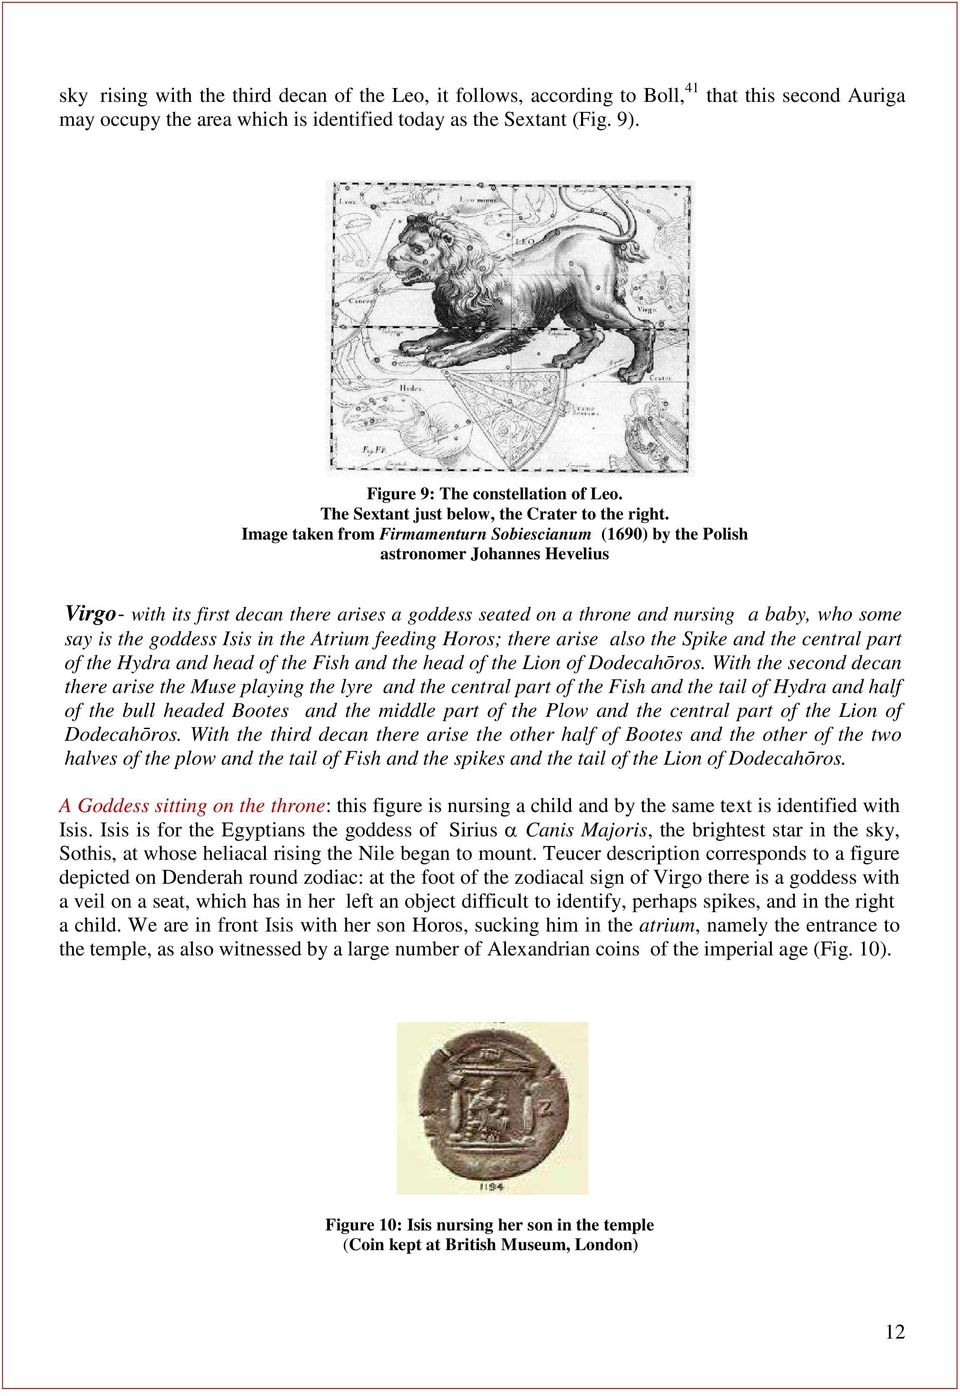 The Paranatellonta in ancient Greek astrological literature